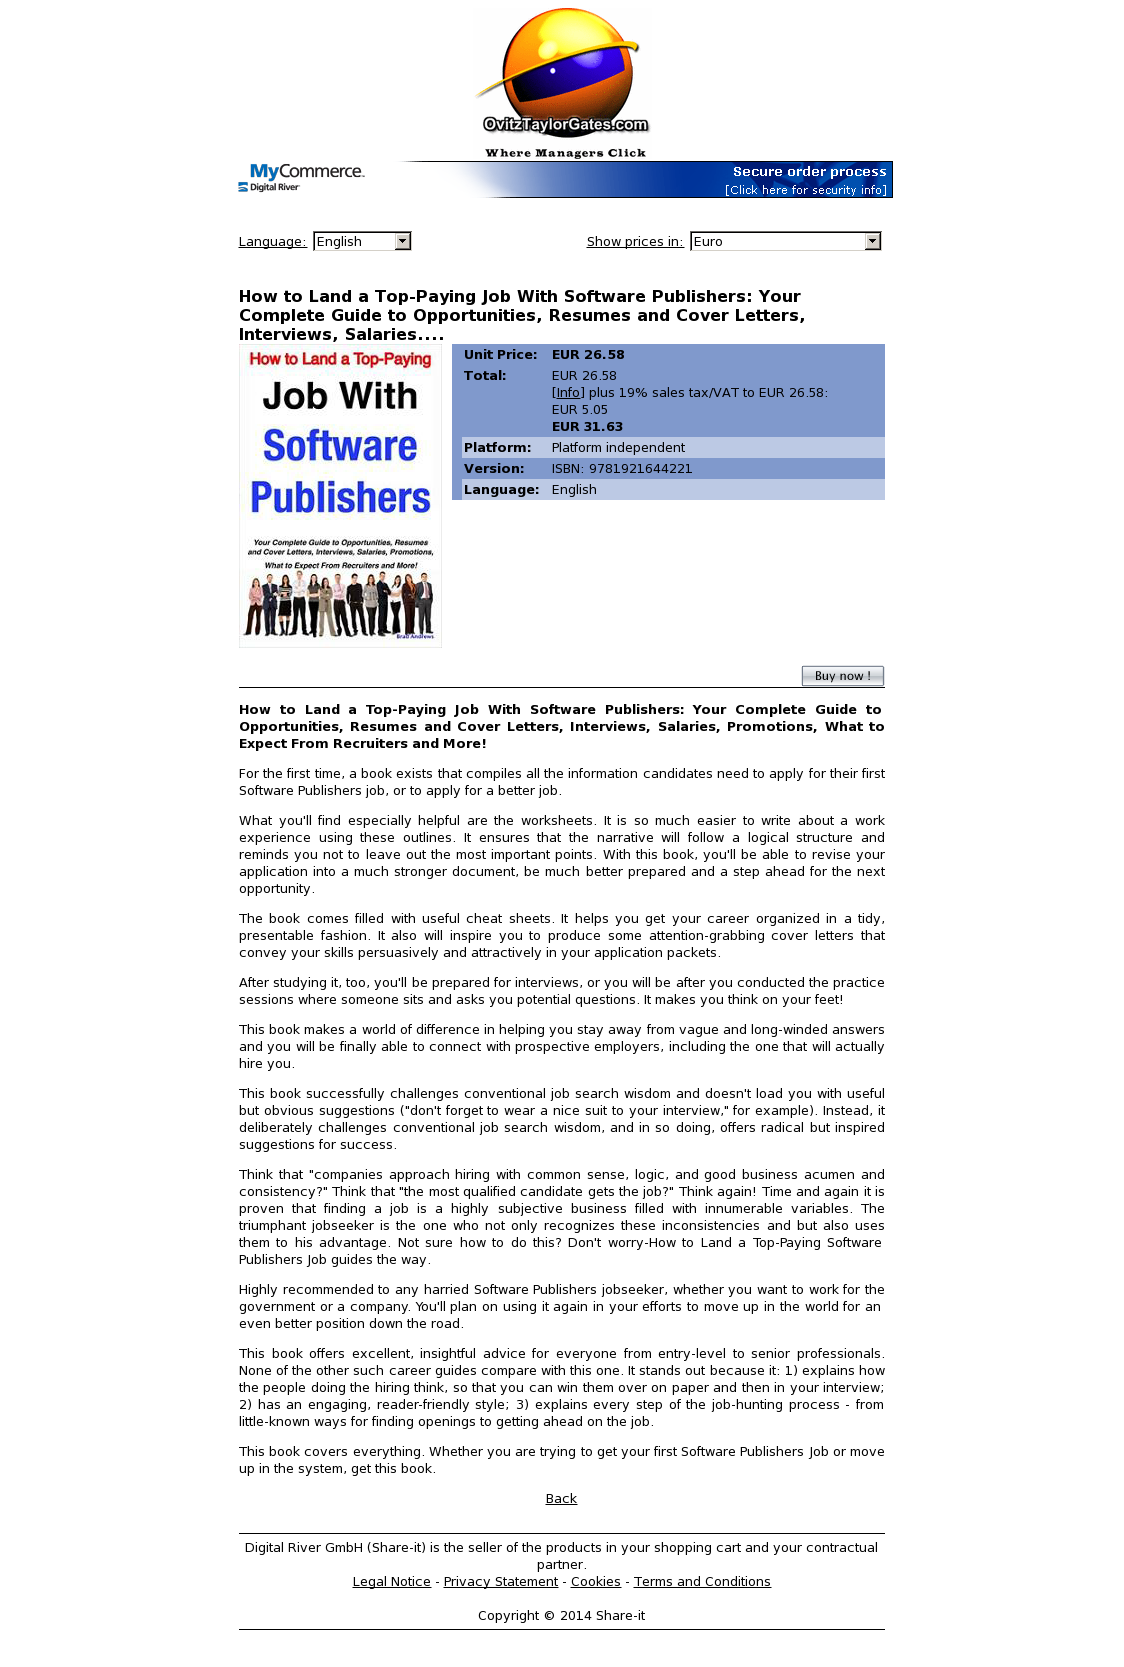 How to Land a Top-Paying Job With Software Publishers: Your Complete Guide to Opportunities, Resumes and Cover Letters, Interviews, Salaries....